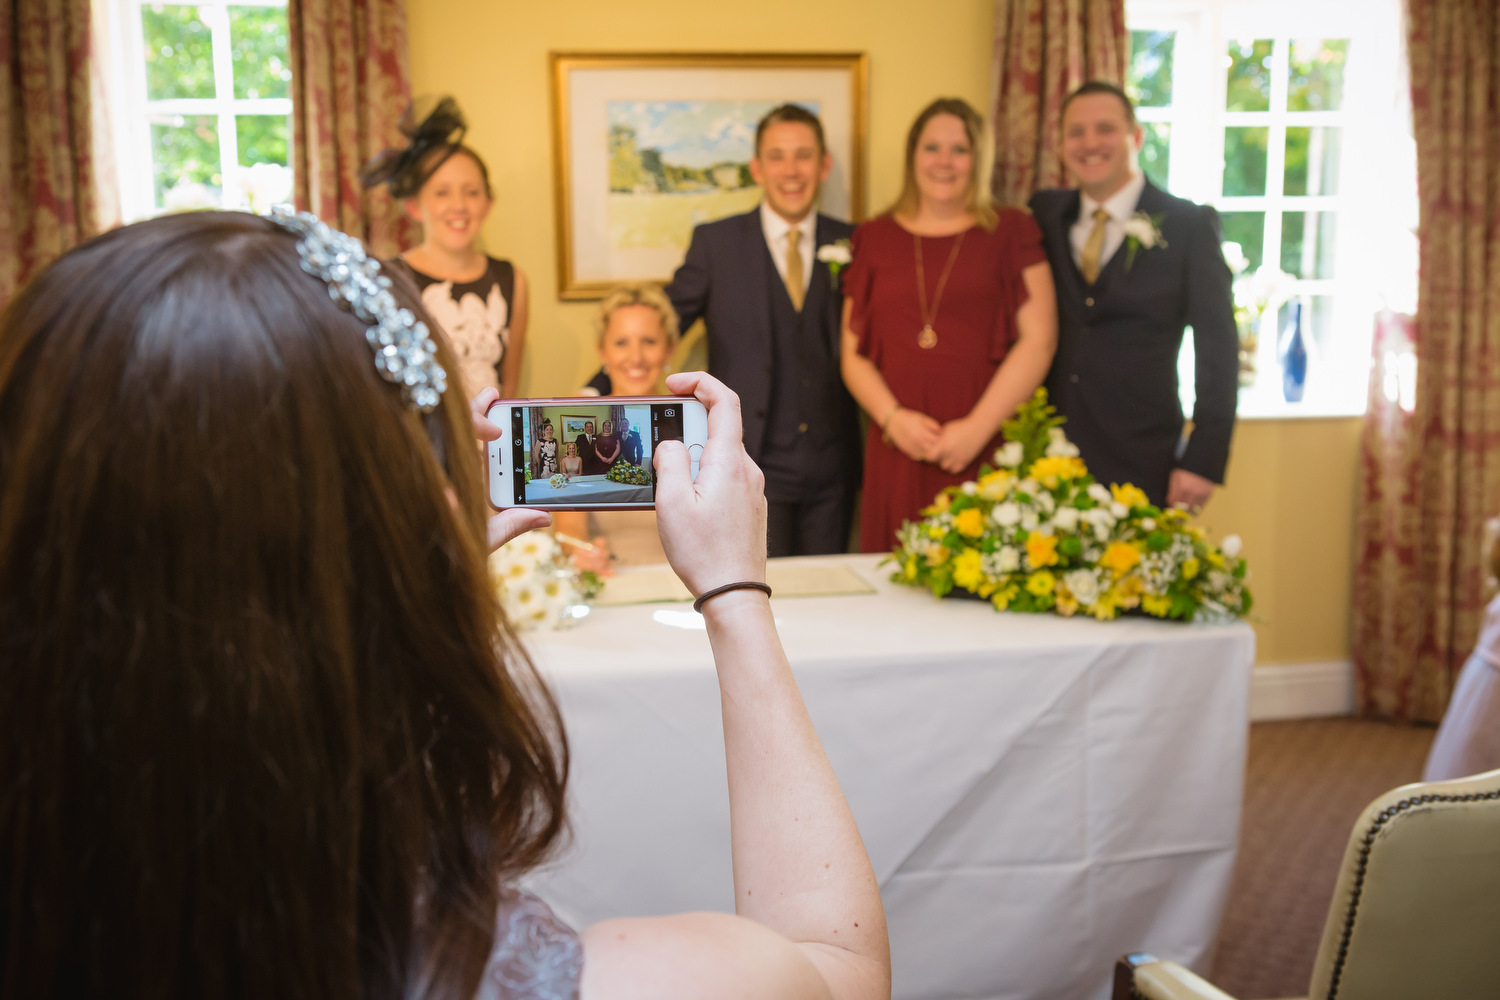 charnwood_weddings_barnsdale_lodge_rutland_dave_j73ane.JPG